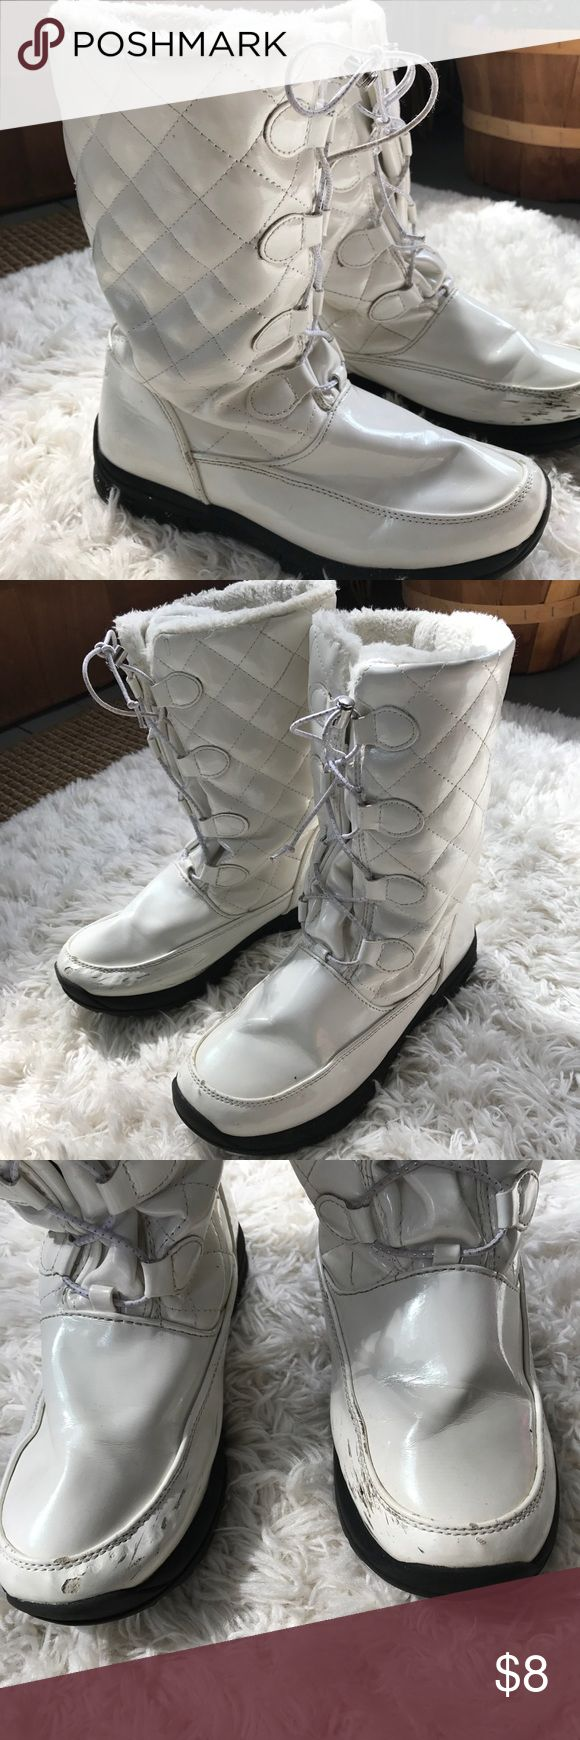 Khombu Boots Youth sz 6 or women's sz 7.5, some scuffs and signs of wear especially at toes but overall good used condition, great quality, warm Khombu Shoes Boots